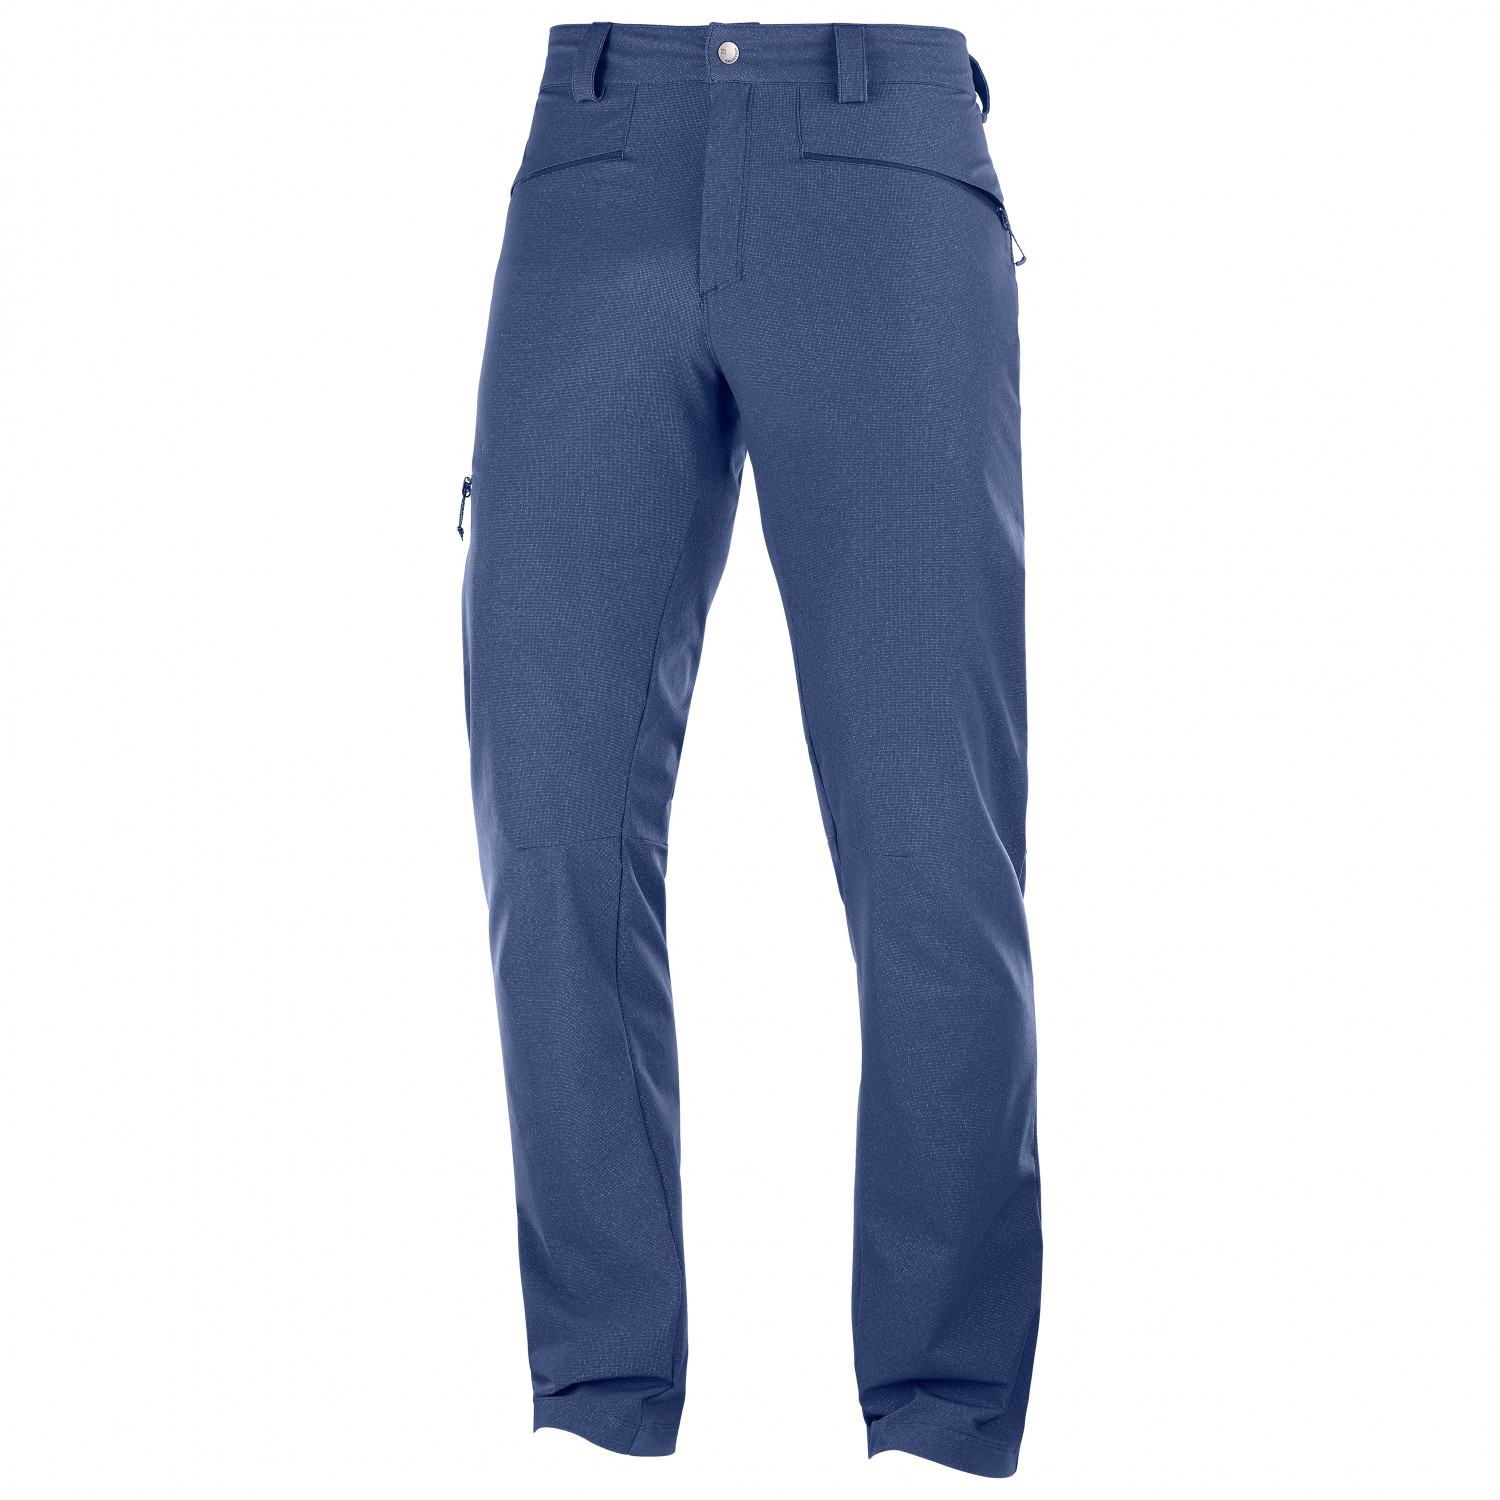 Navy Salomon Wayfarer Mens Walking Pants